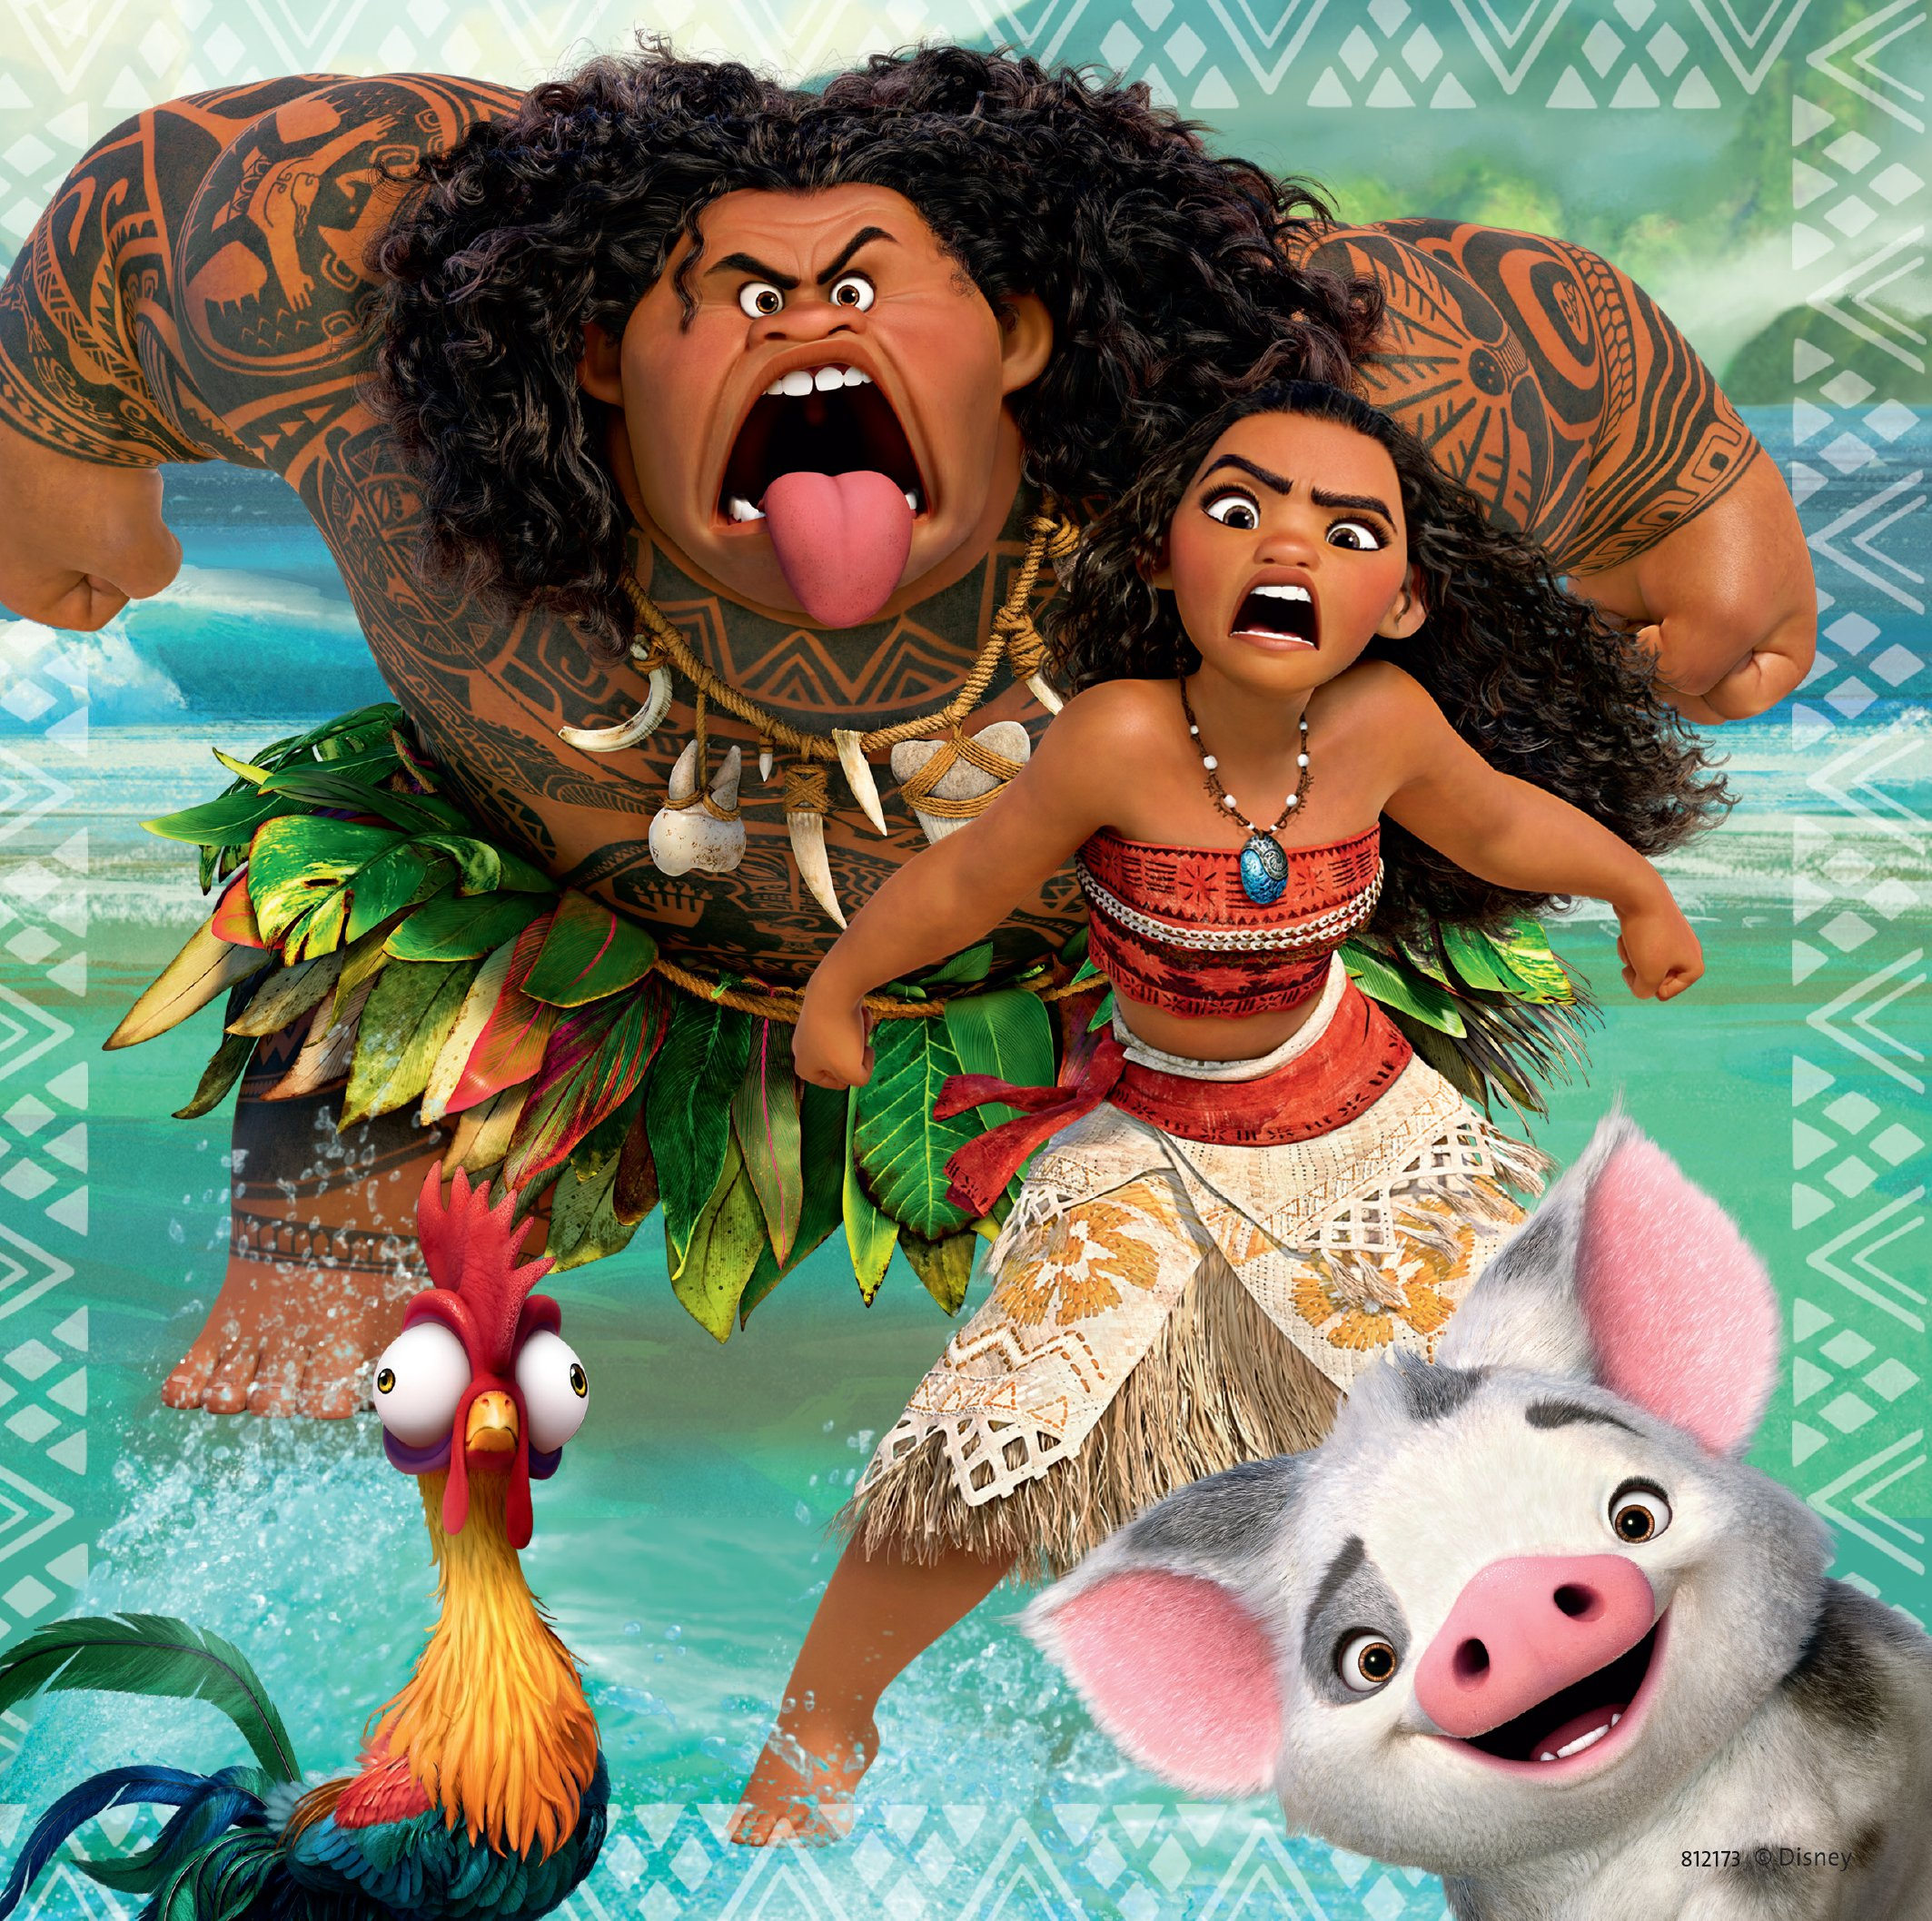 Ravensburger Disney Moana Born To Voyage 49 Piece Jigsaw Puzzle for Kids – Every Piece is Unique, Pieces Fit Together Perfectly by Ravensburger (Image #3)